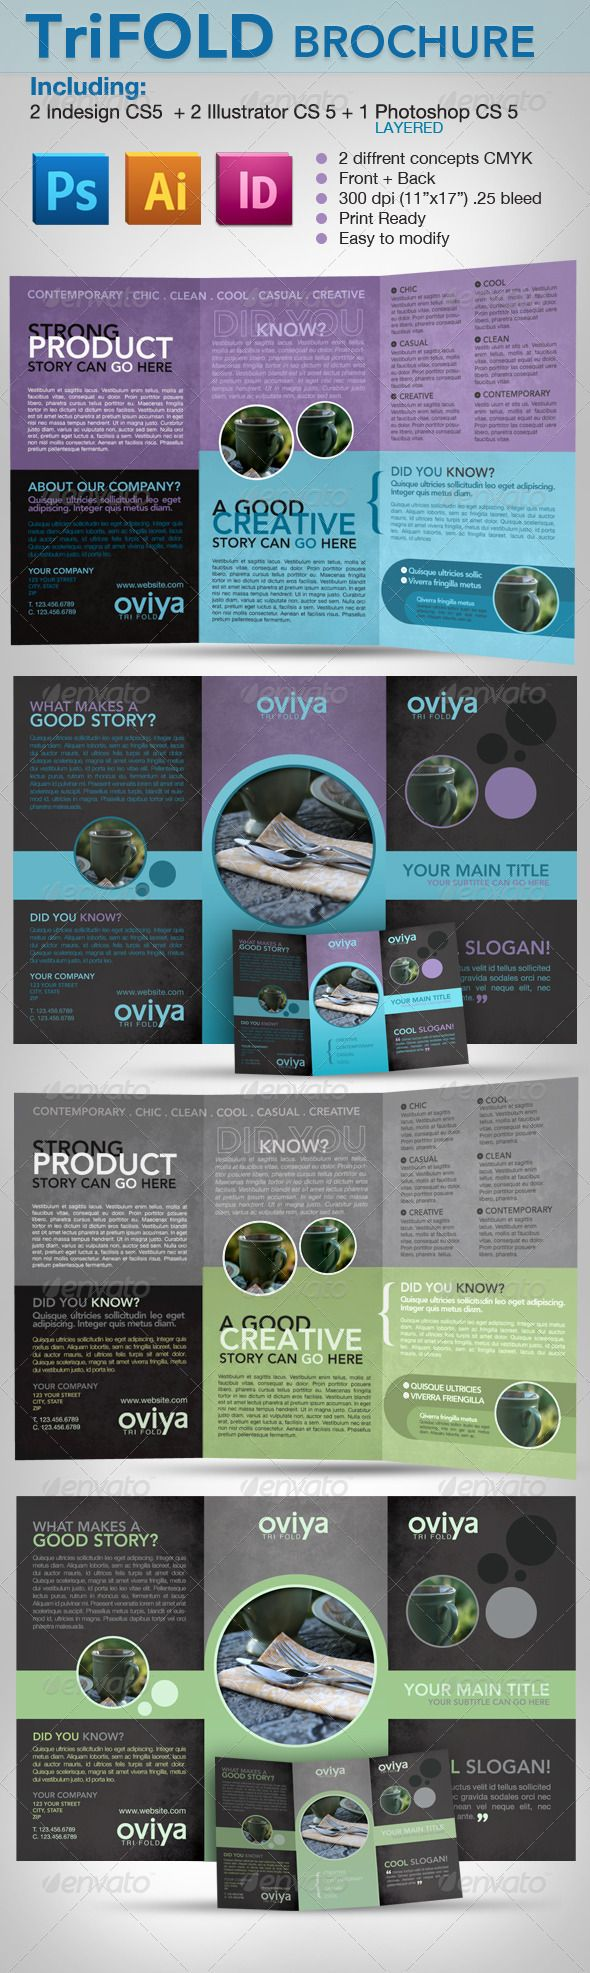 indesign brochure template - 9 best images about photoshop graphics on pinterest ux